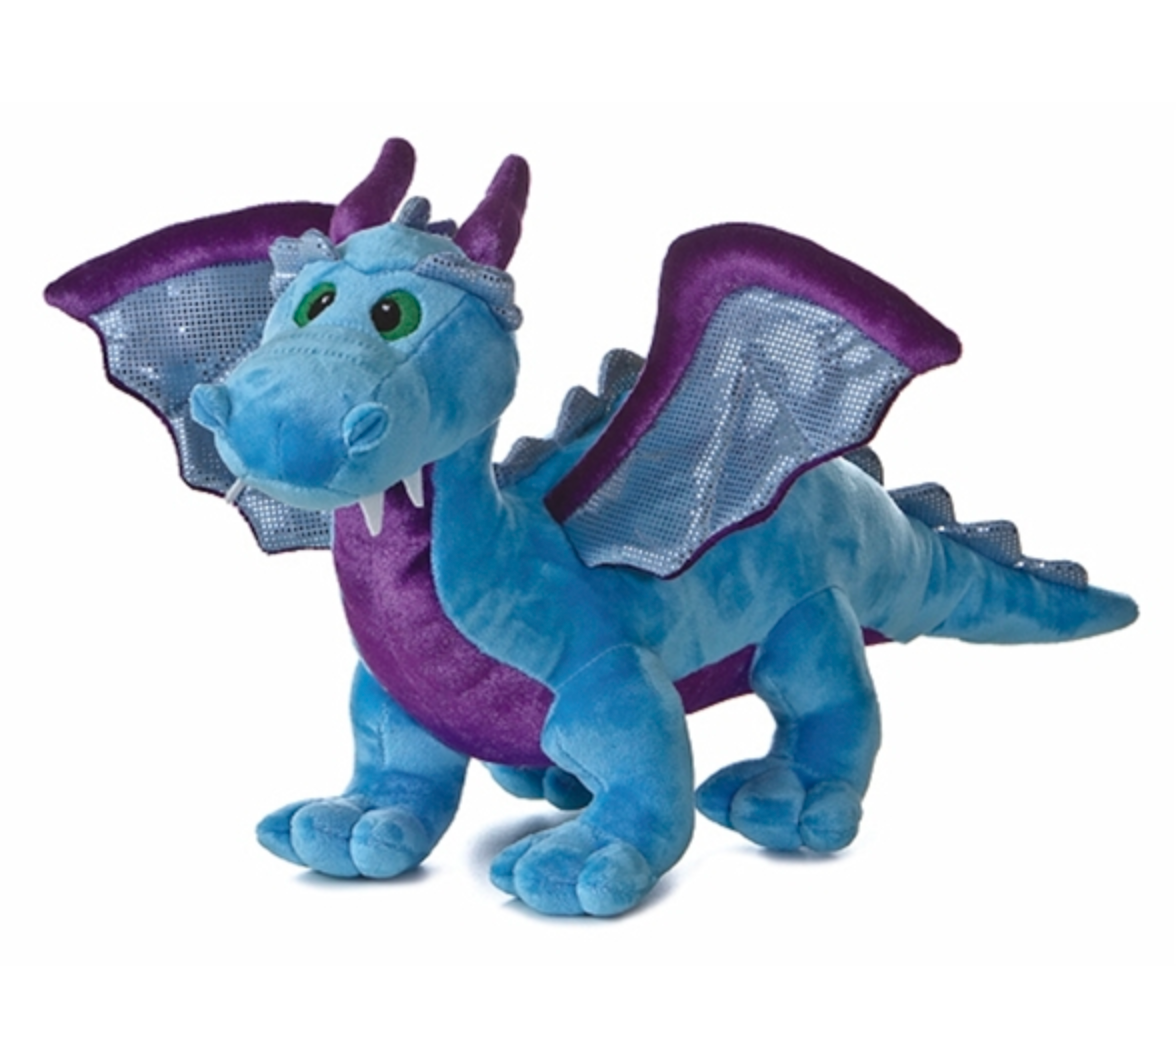 Stuffed Roaring Blue Dragon 14 Inch with Sound!